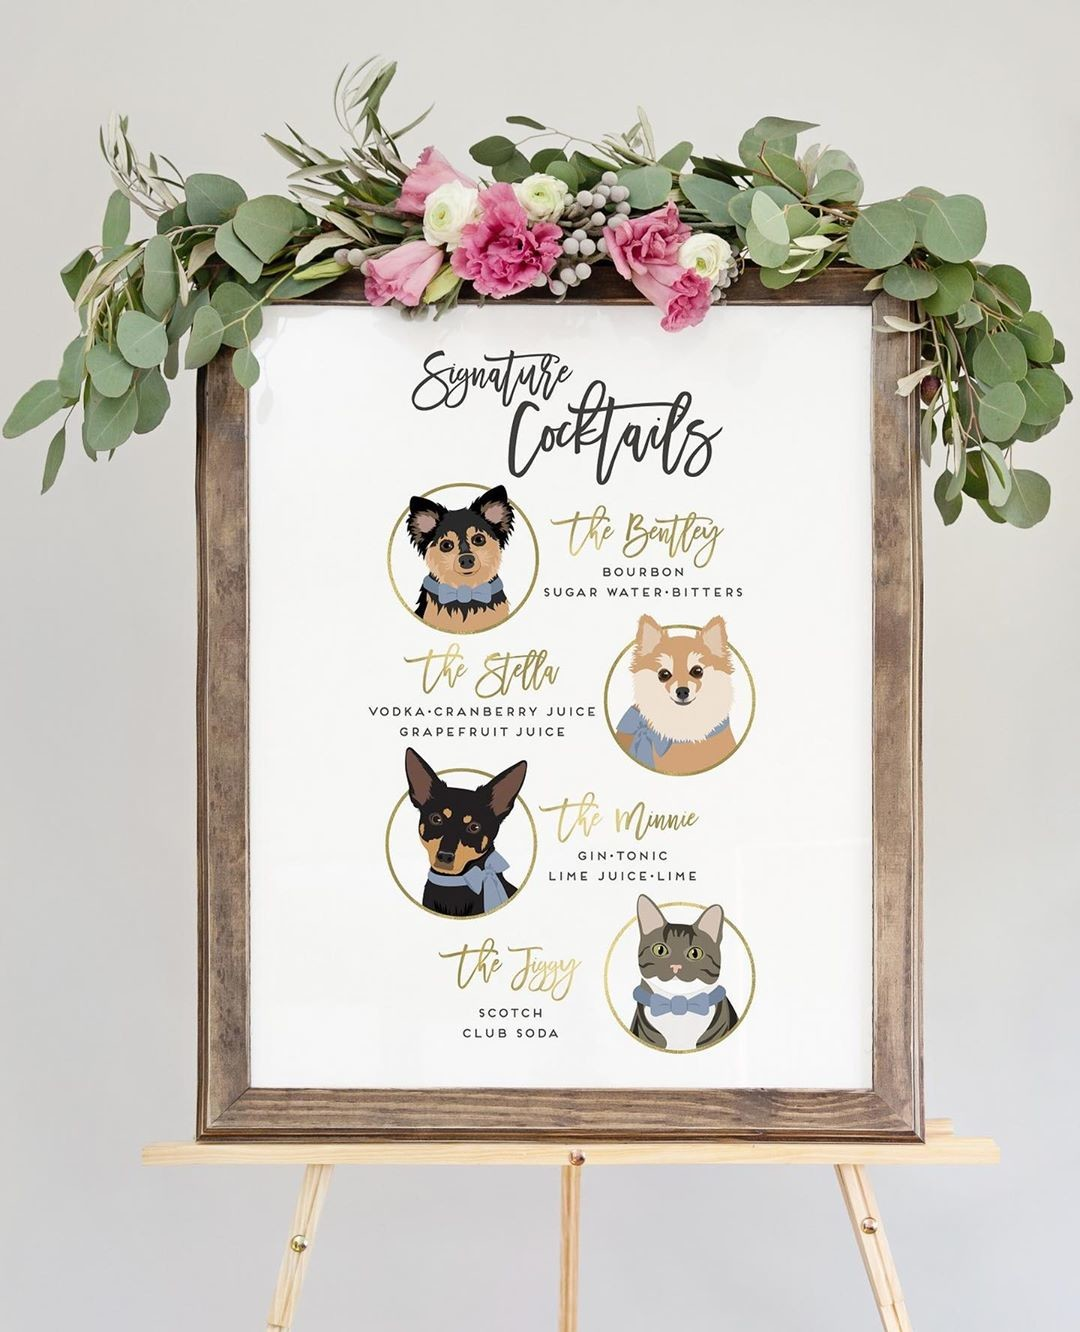 When you've got 4 adorable fur-babies and a love of cocktails, this is the PERFECT way to combine them! And for any summer wedding